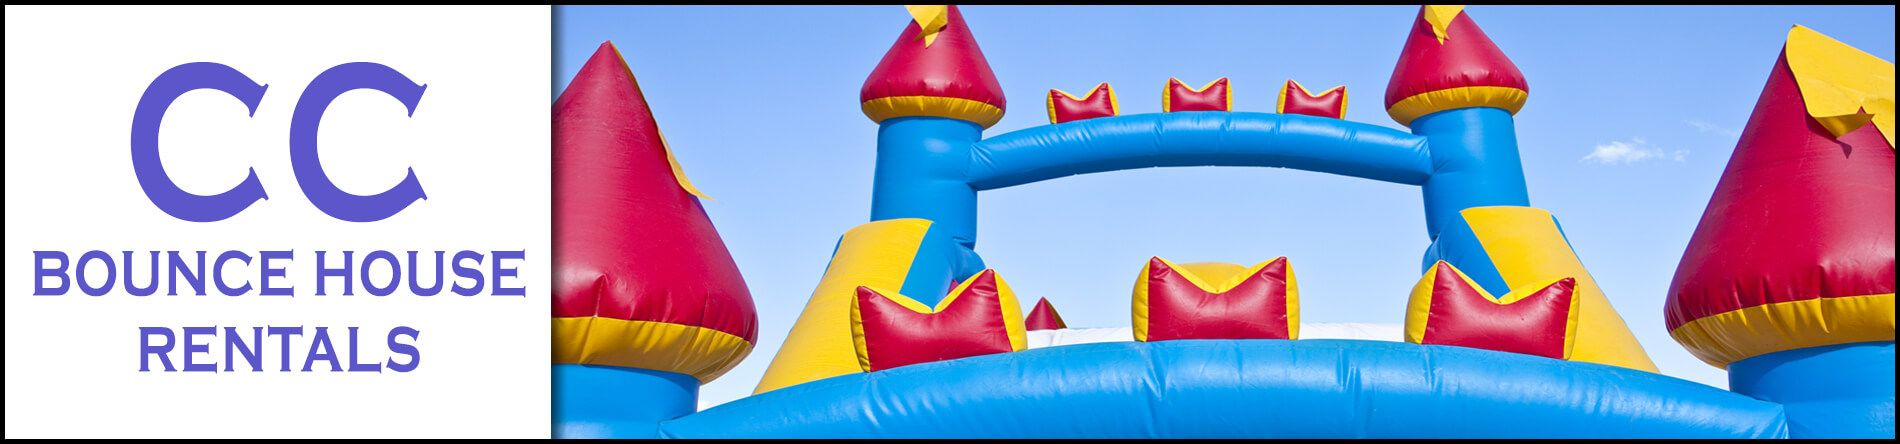 Cc bounce house rentals is a bounce house and water slide